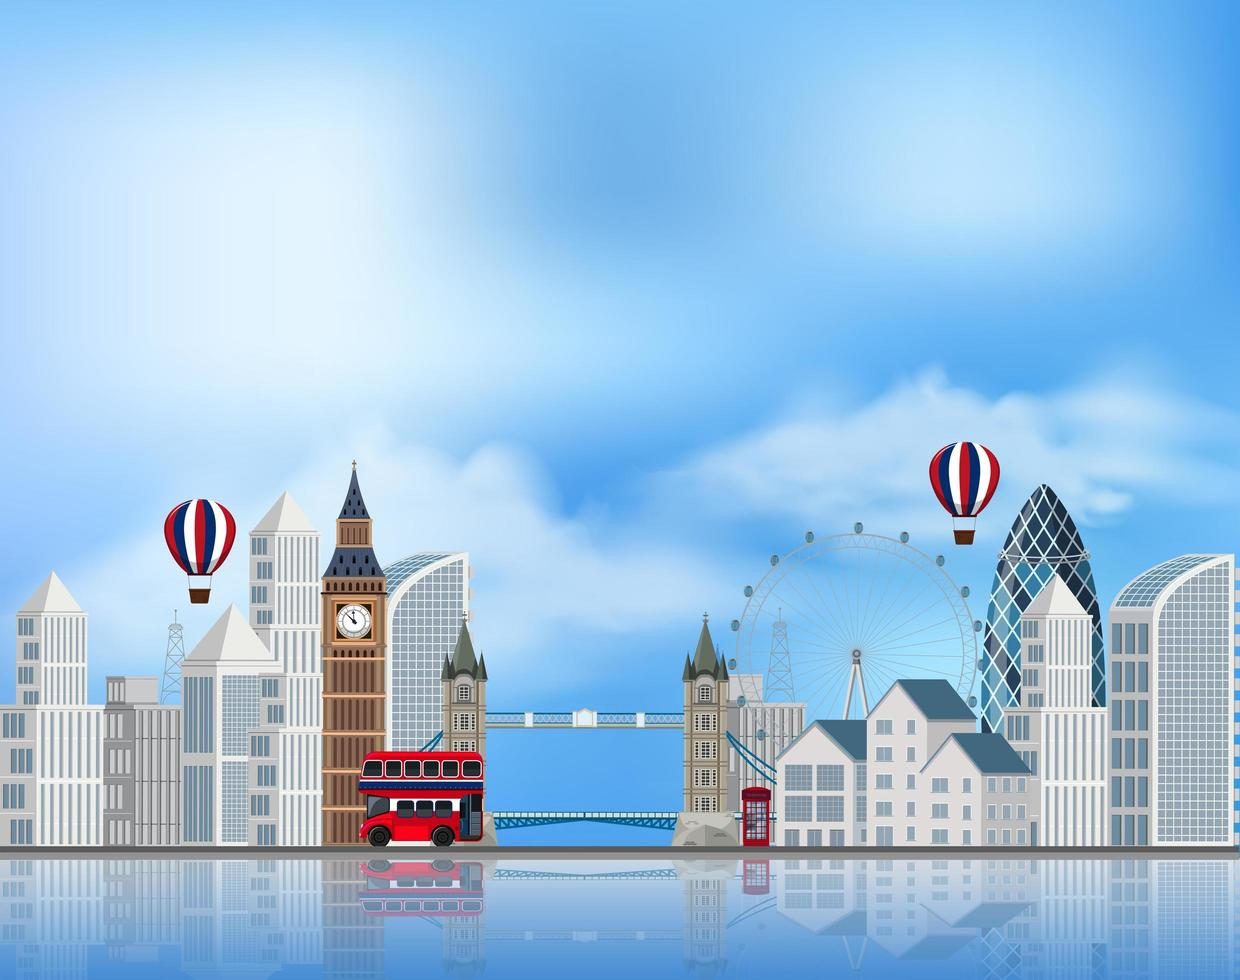 A Tourist Attraction in London vector